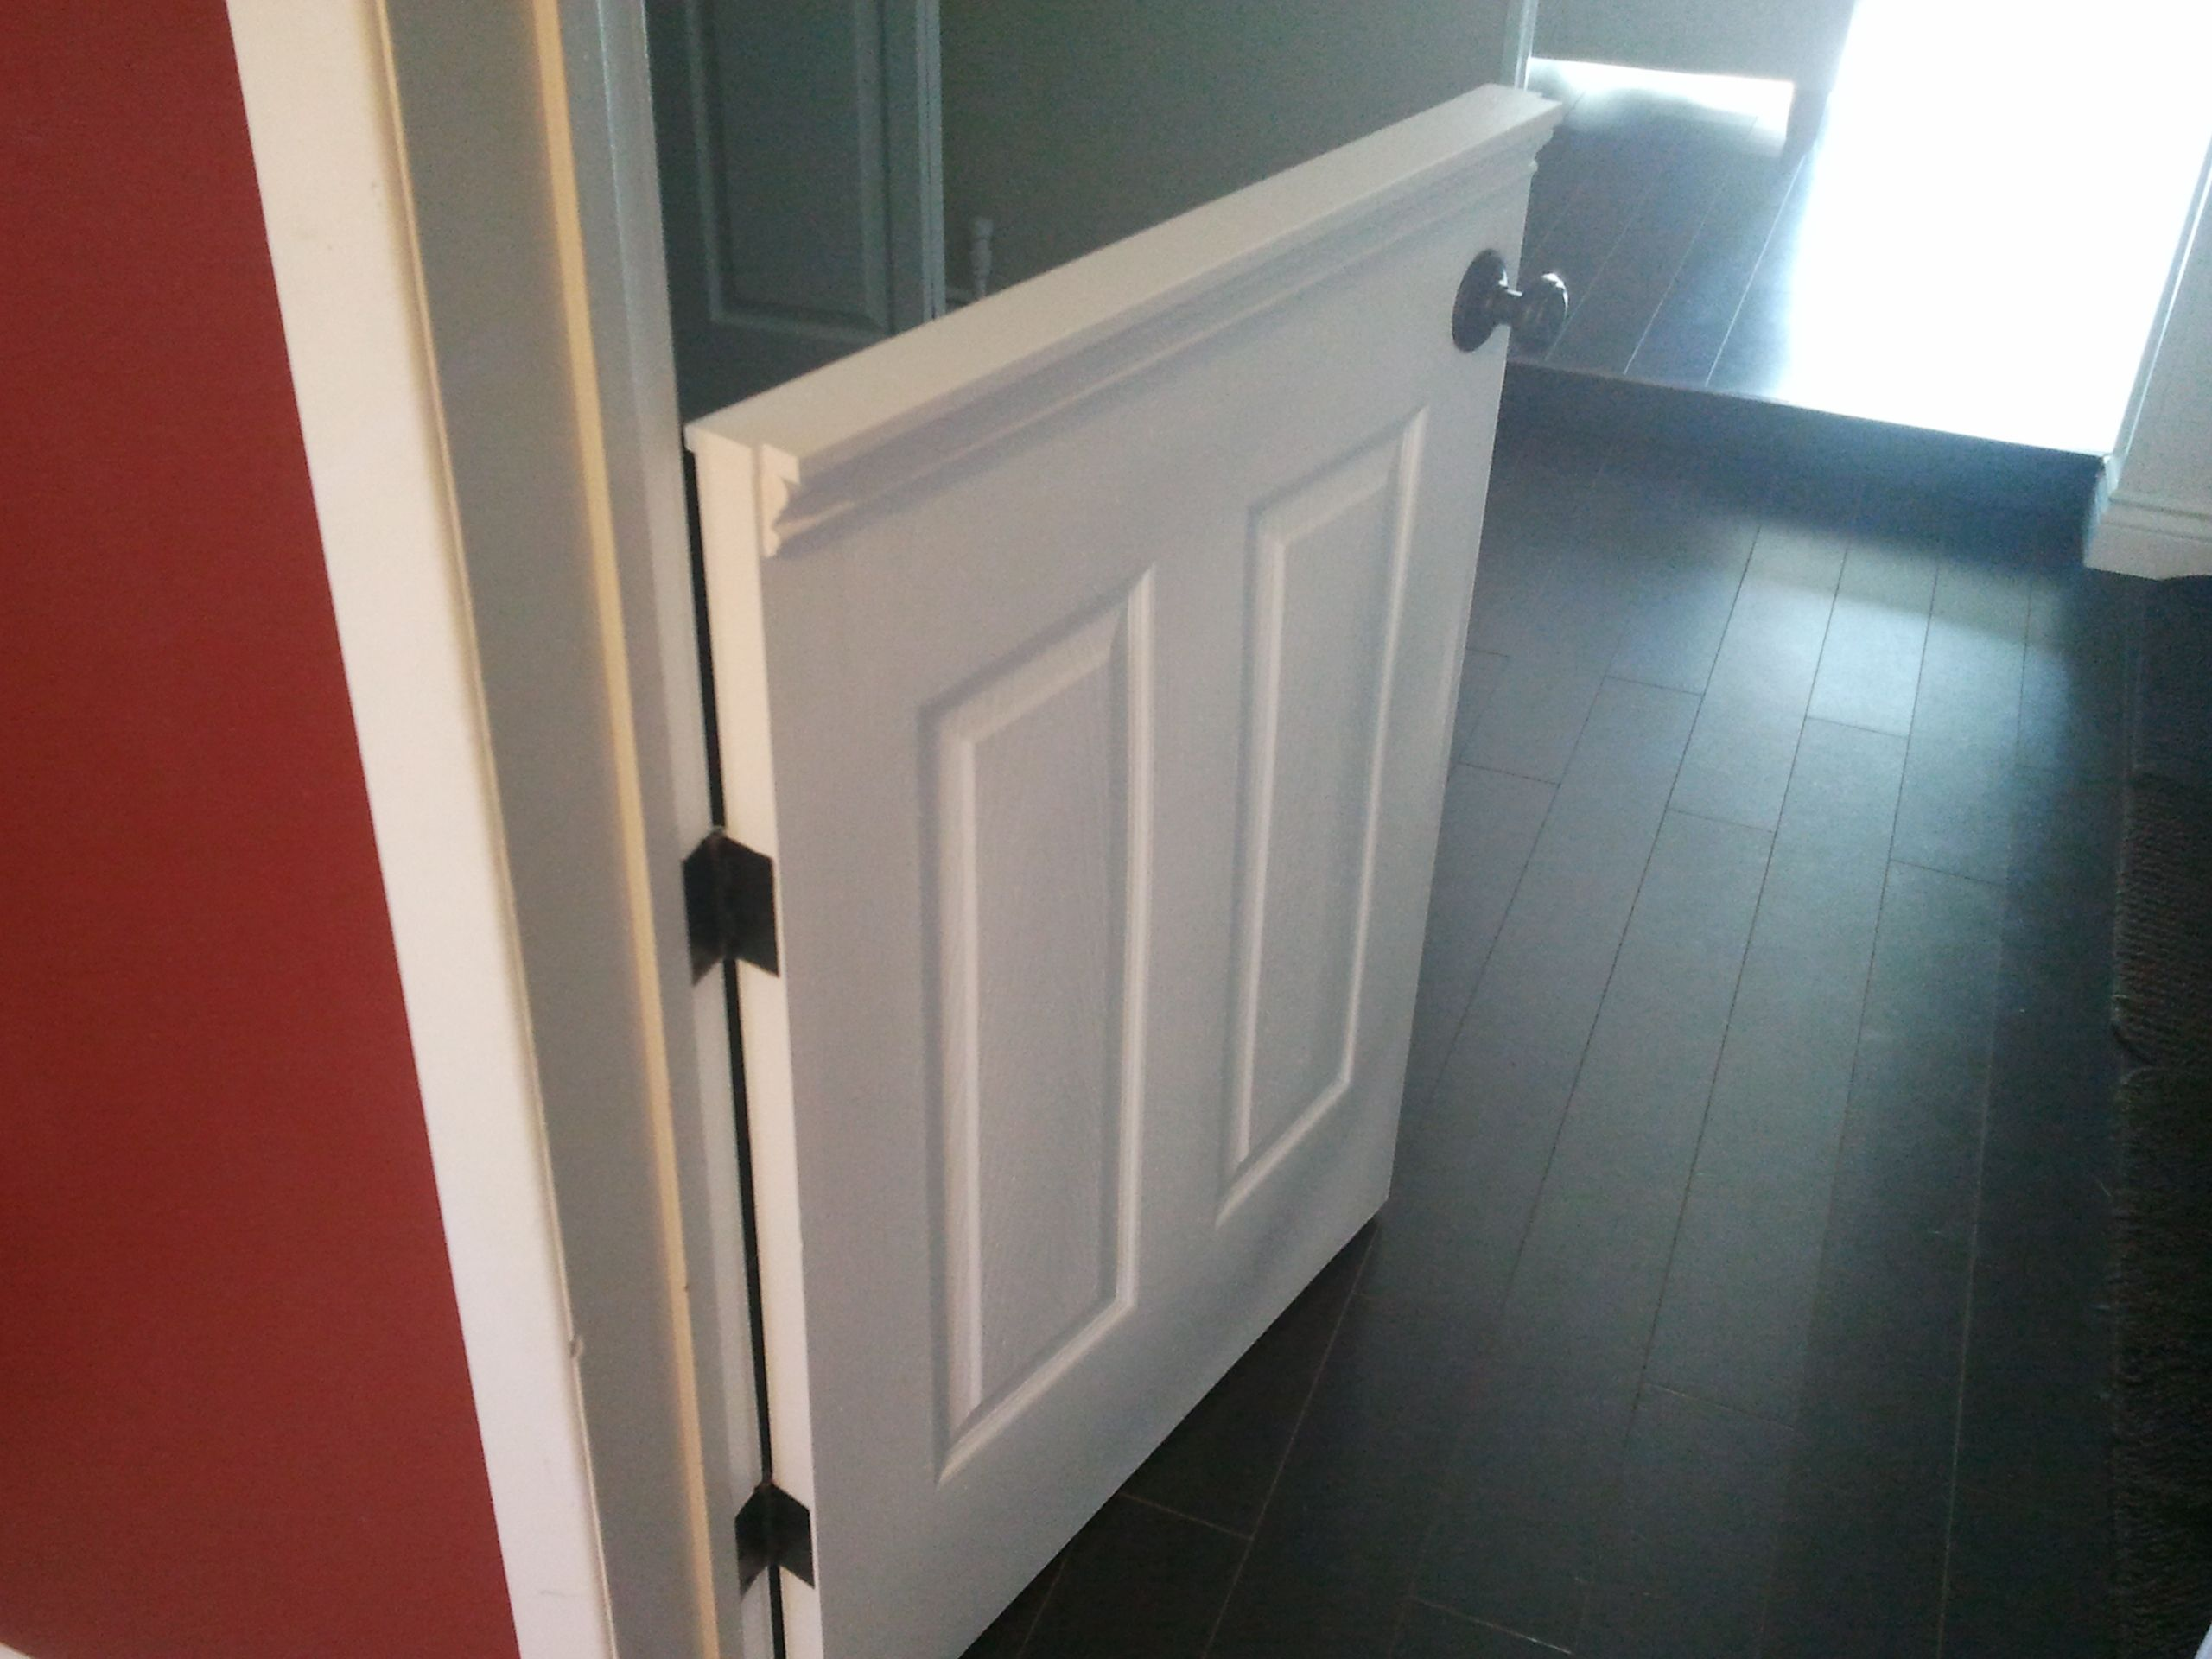 Charmant Half Doors | Installed A Half Door To Isolate Our Dog From The Laminate  Flooring .